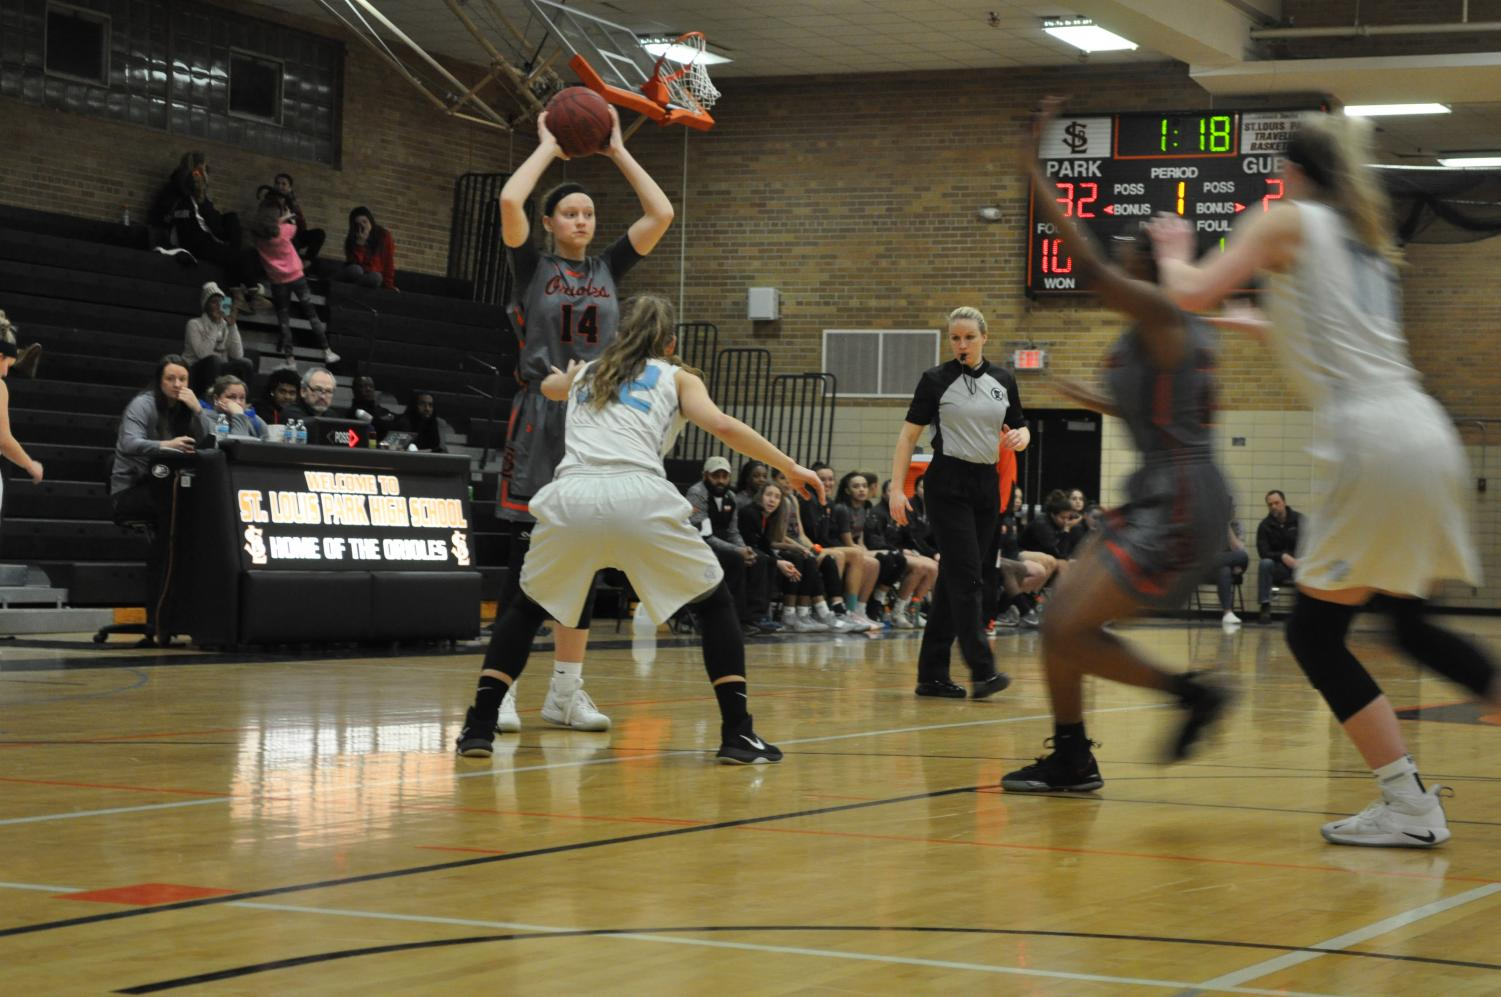 Senior Lindsey Olson gets ready to pass the ball to one of her teammates. Olson reached a record of 1000 points.